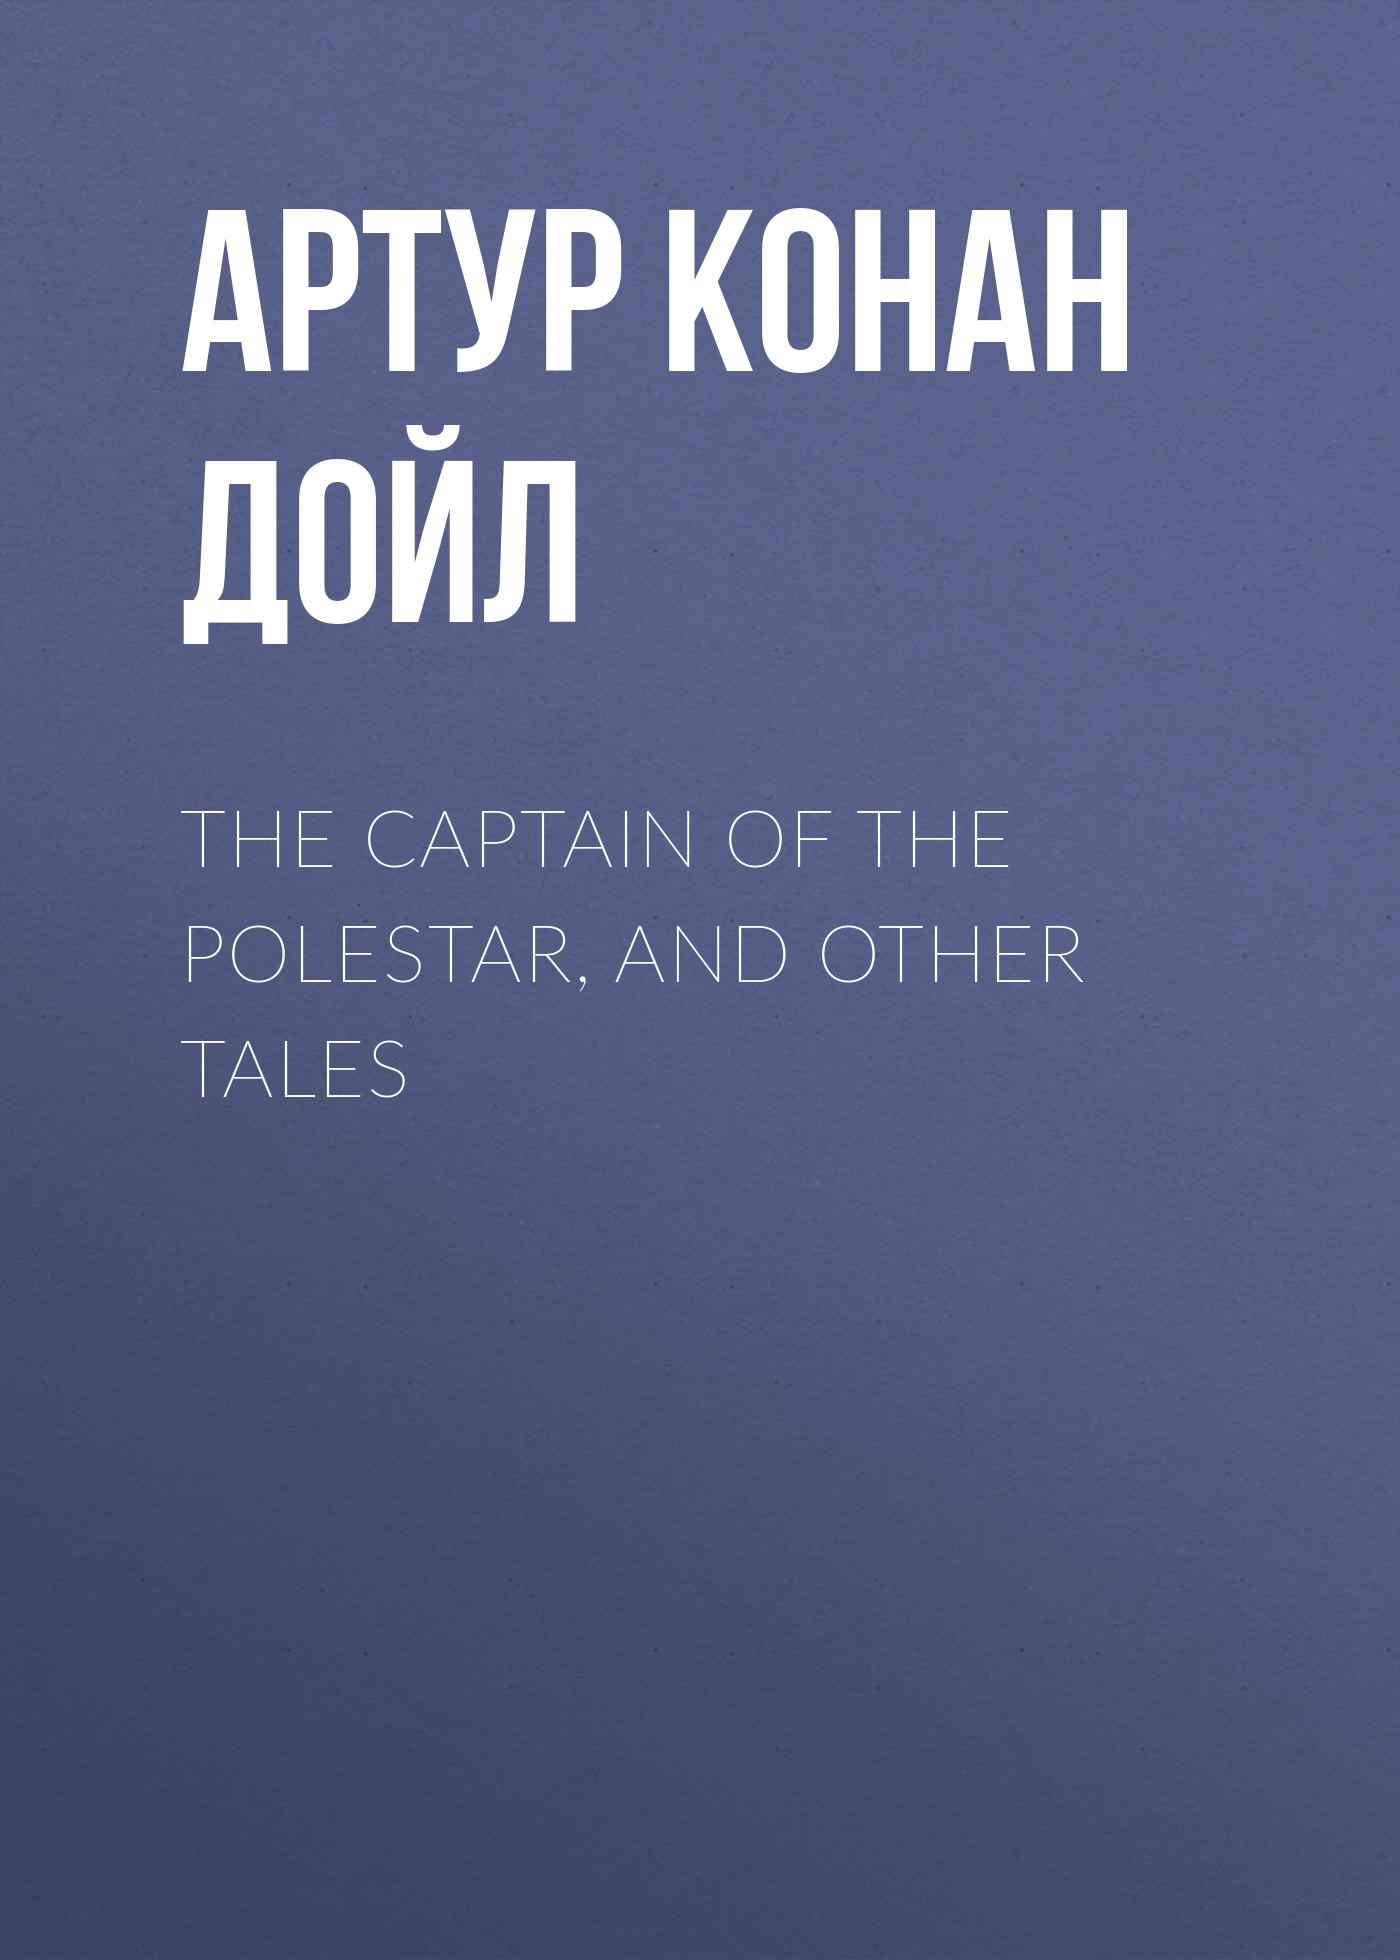 Артур Конан Дойл The Captain of the Polestar, and Other Tales артур конан дойл the valley of fear